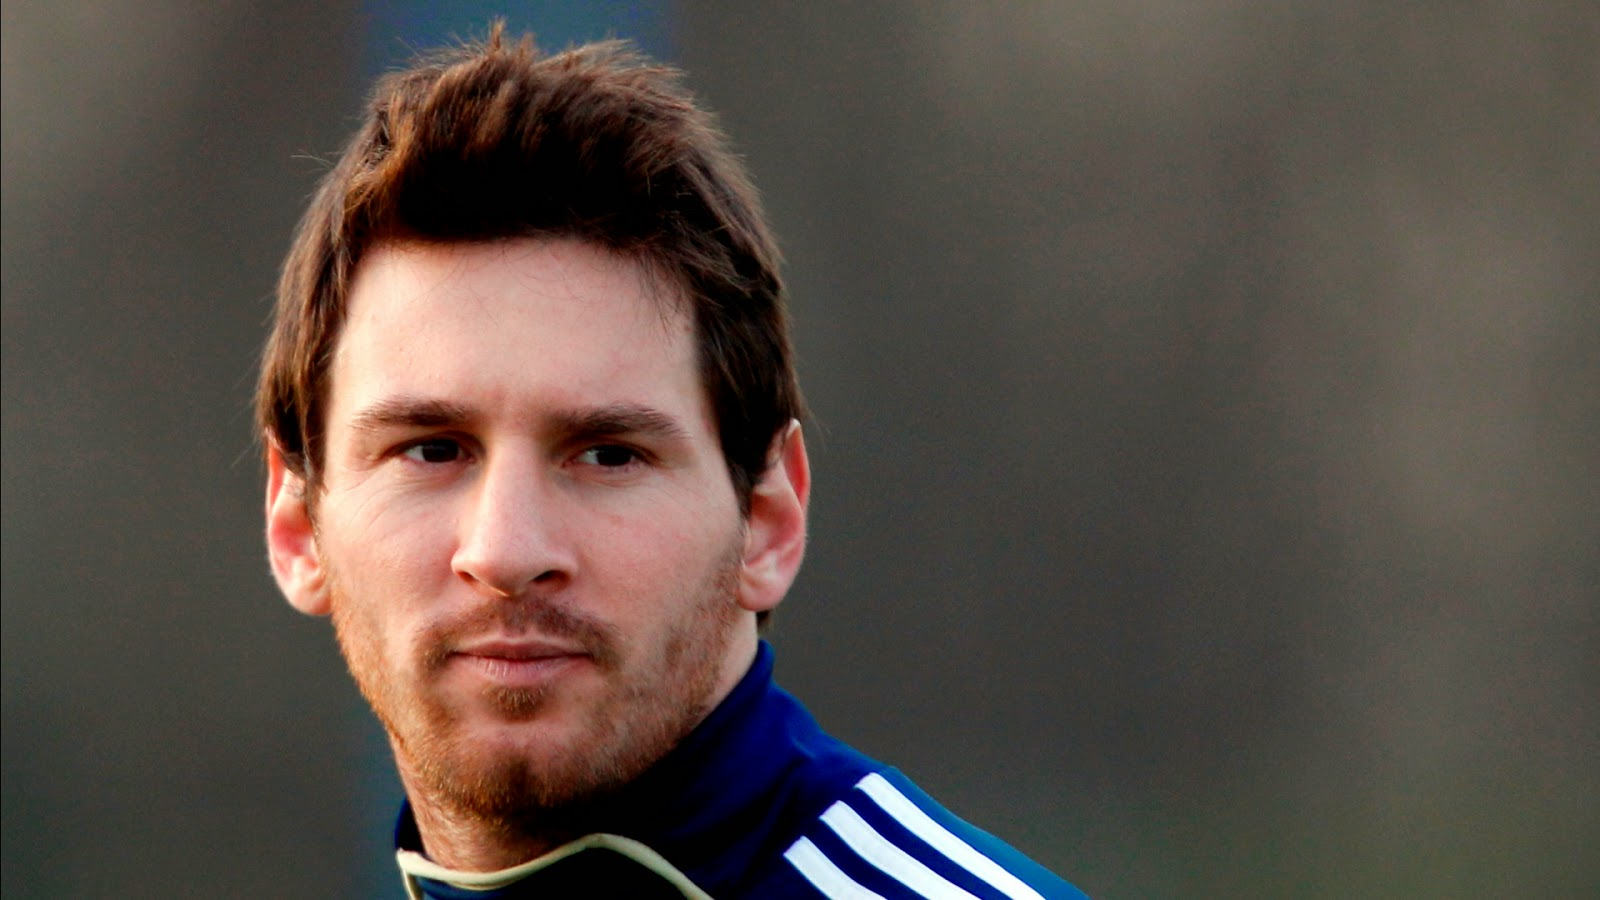 Lionel Messi Short Hairstyles